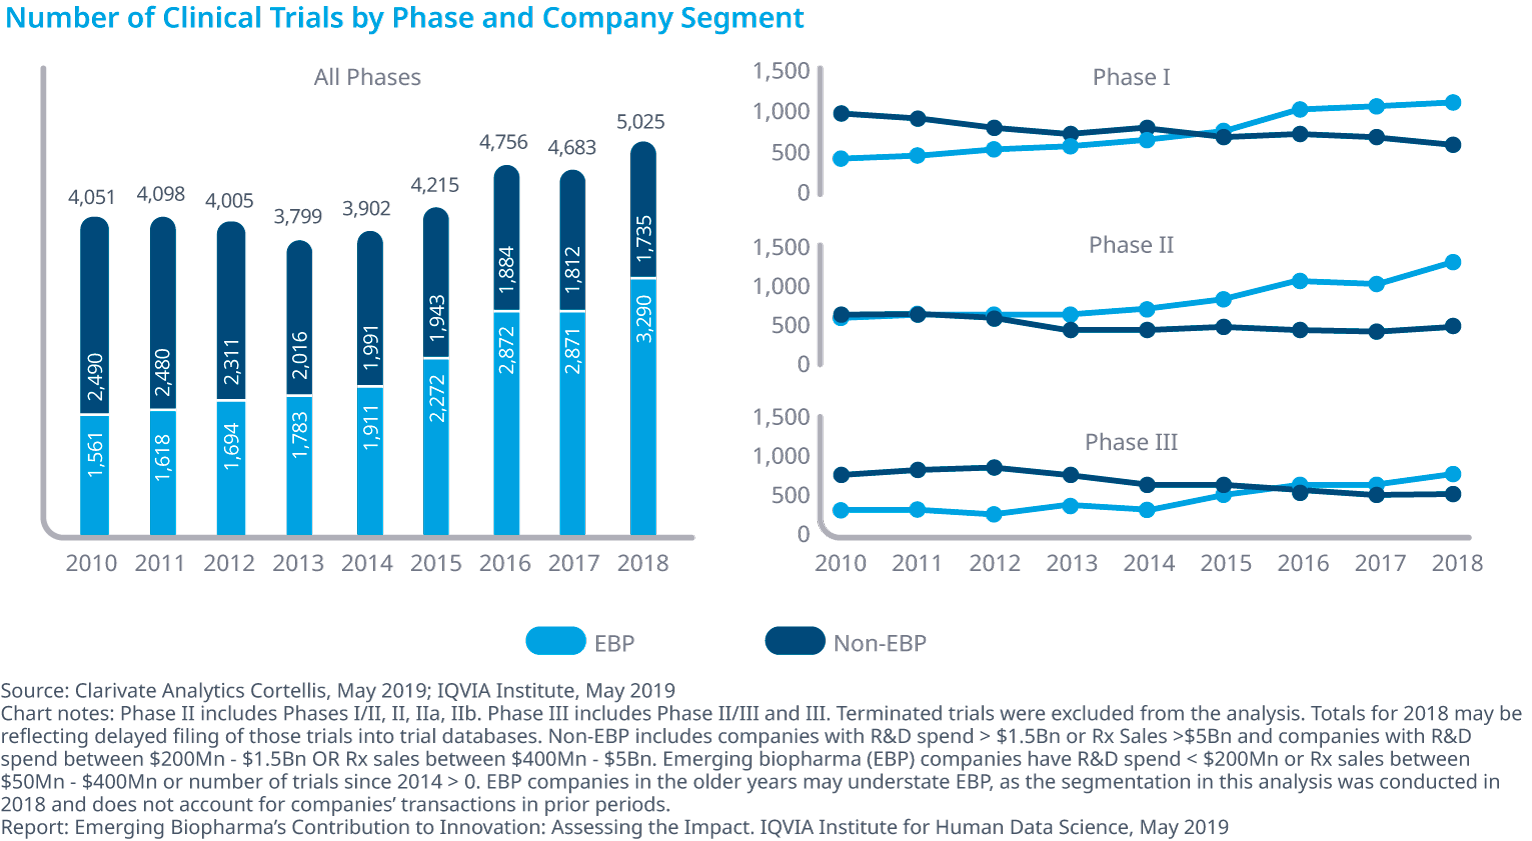 Chart 9: Number of Clinical Trials by Phase and Company Segment